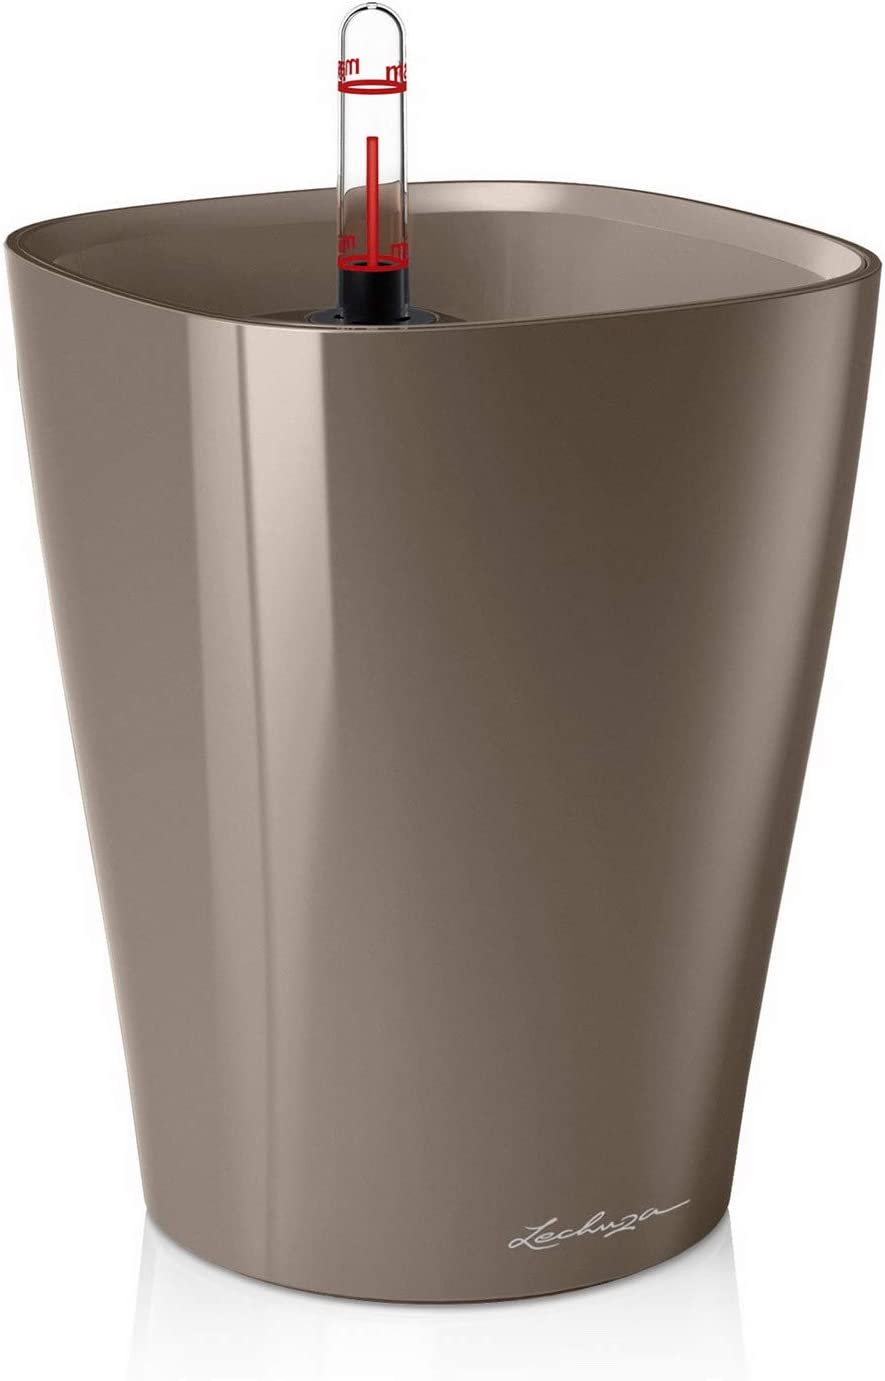 Lechuza 14904 Deltini Self-Watering Garden Planter for Indoor and Outdoor Use, Taupe